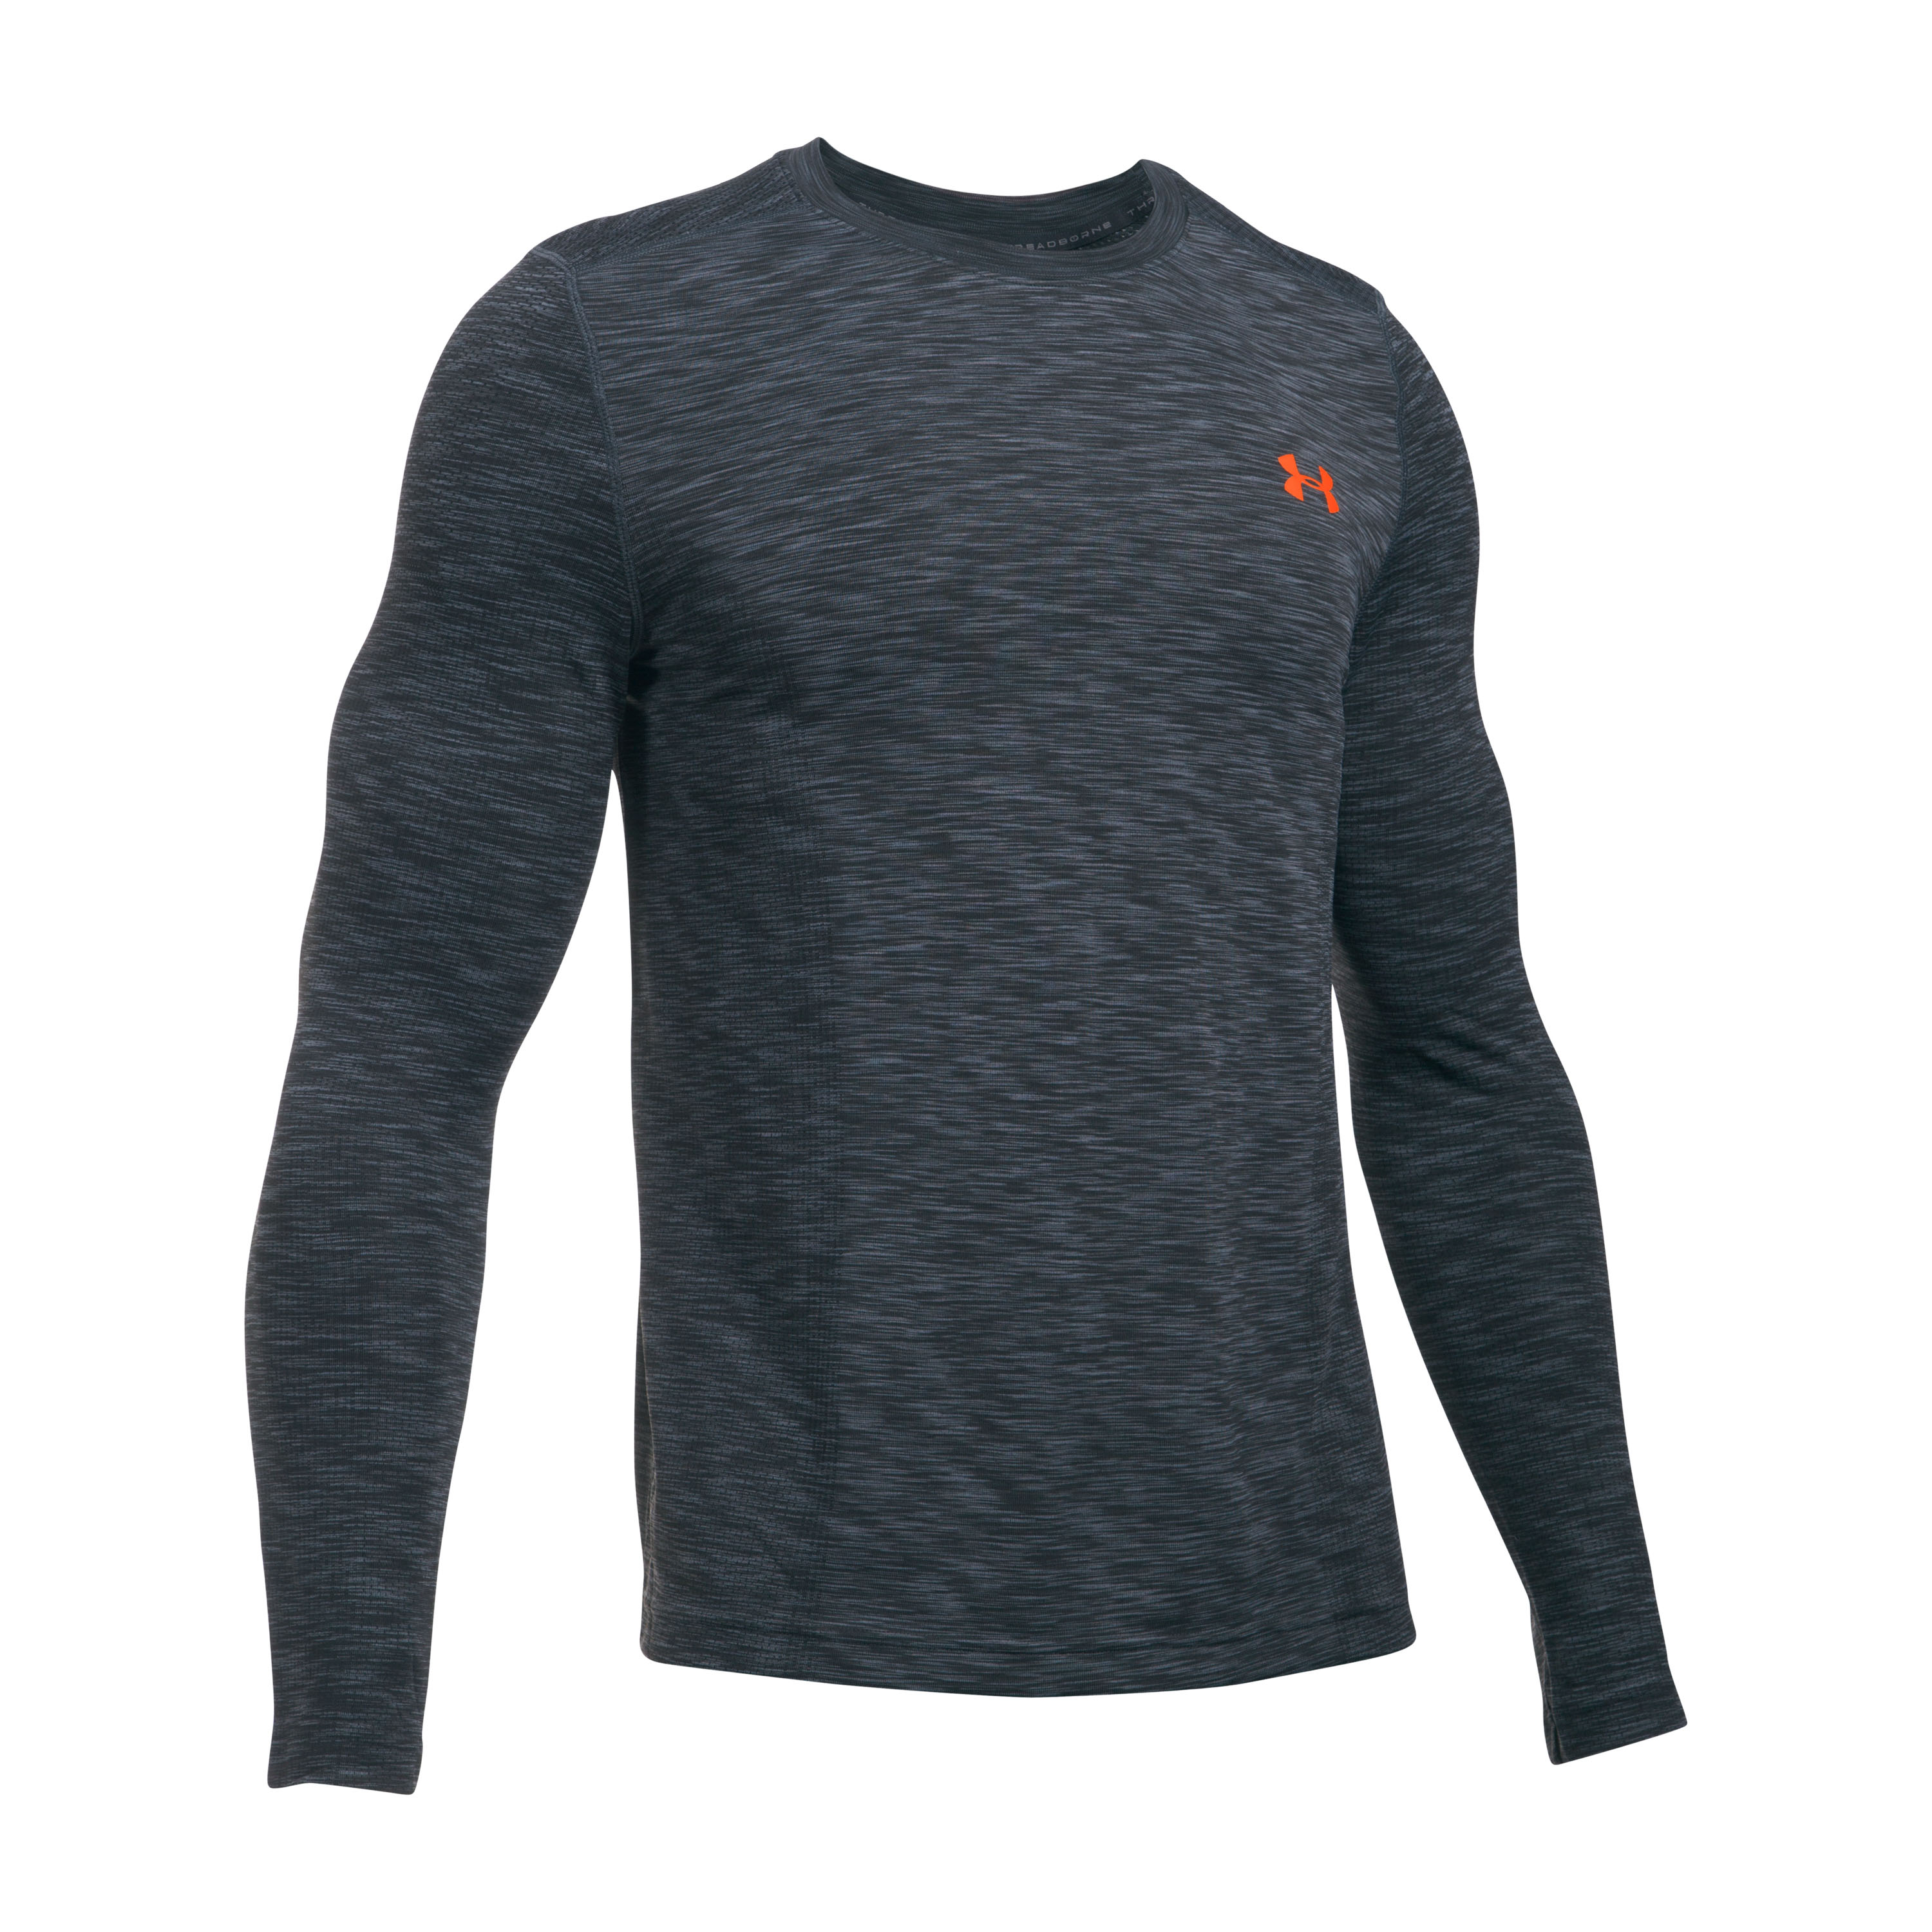 Under Armour Fitness Langarmshirt Threadborne Seamless grau rot